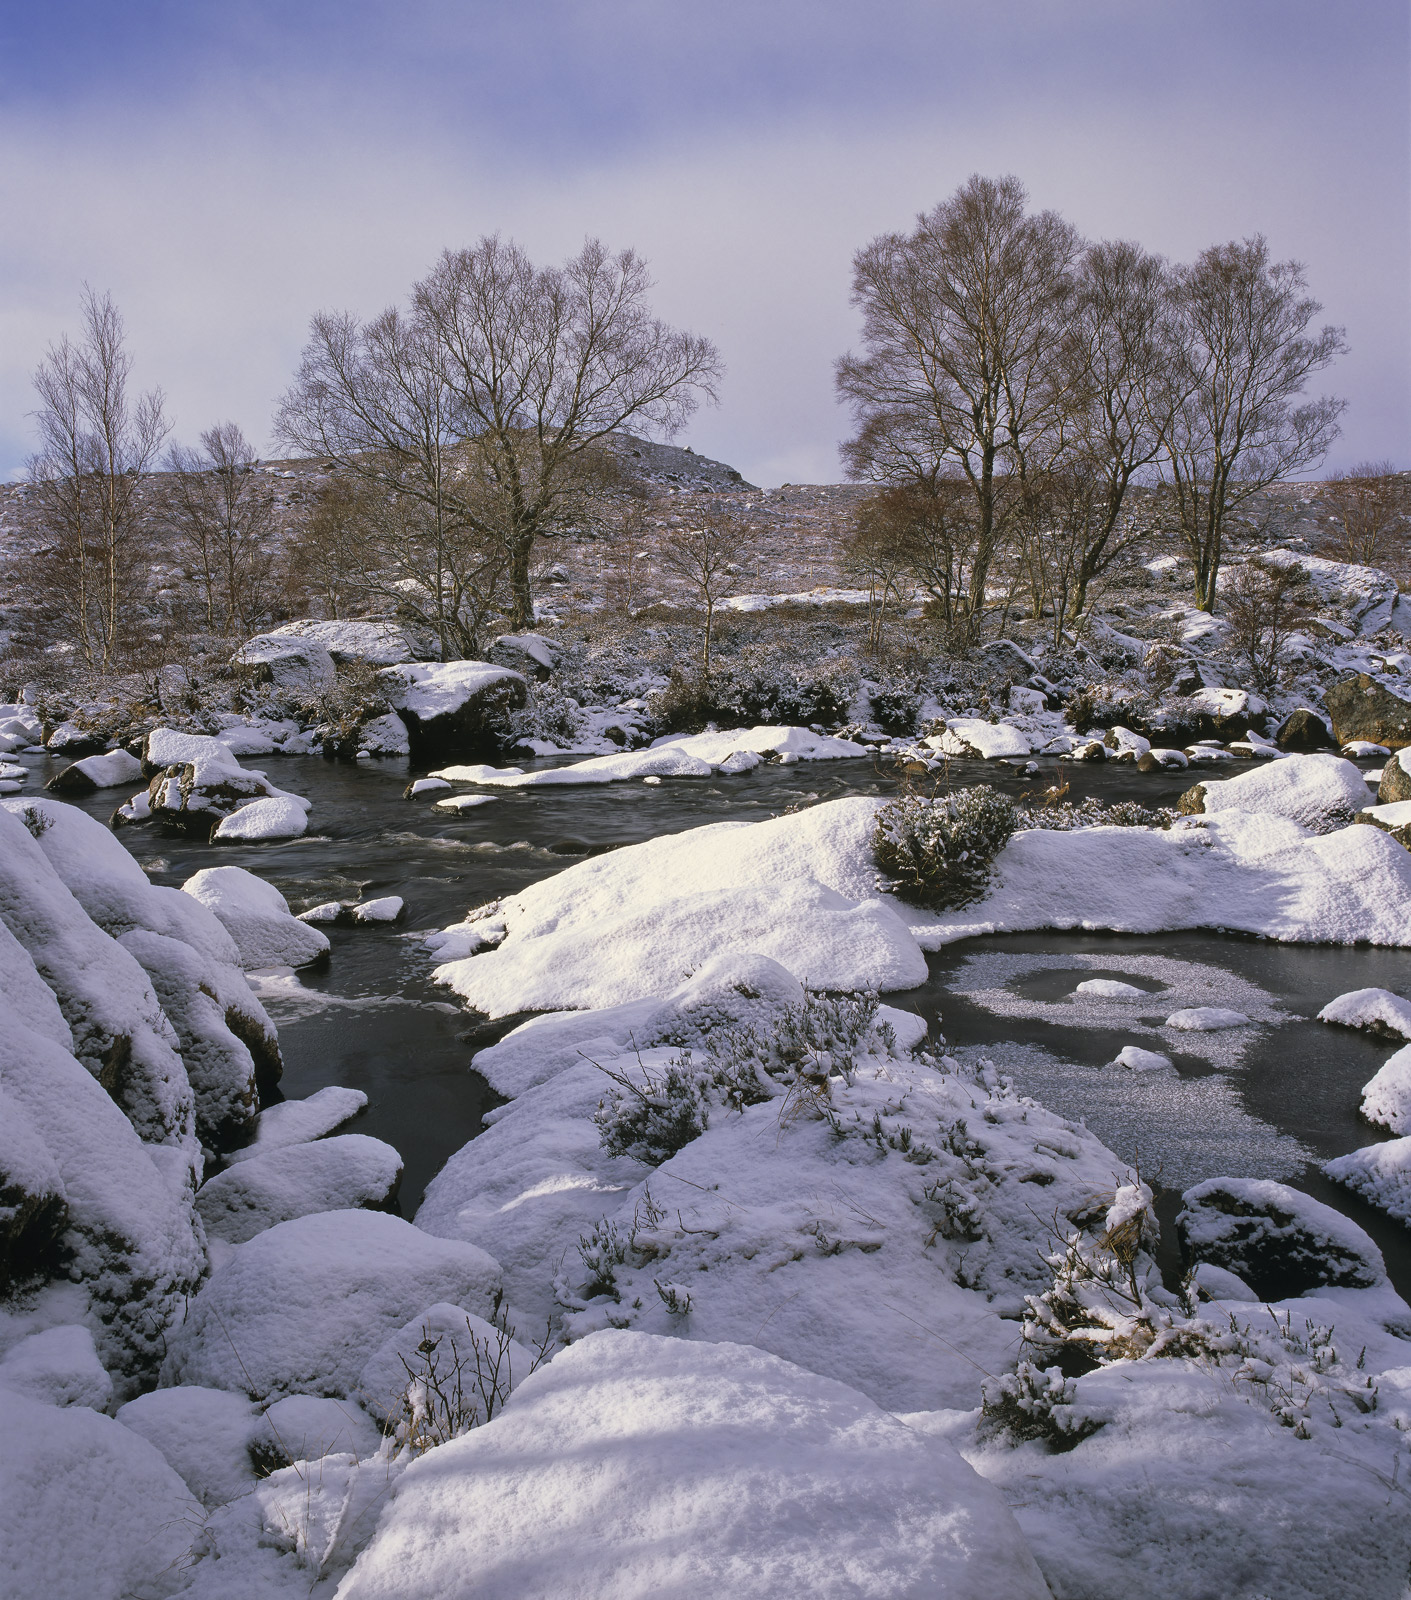 Ice Water Glascarnoch, Glascarnoch, Highland, Scotland, river,  tumbles, moor, ice, snow, free flowing, hazy, clouds  , photo